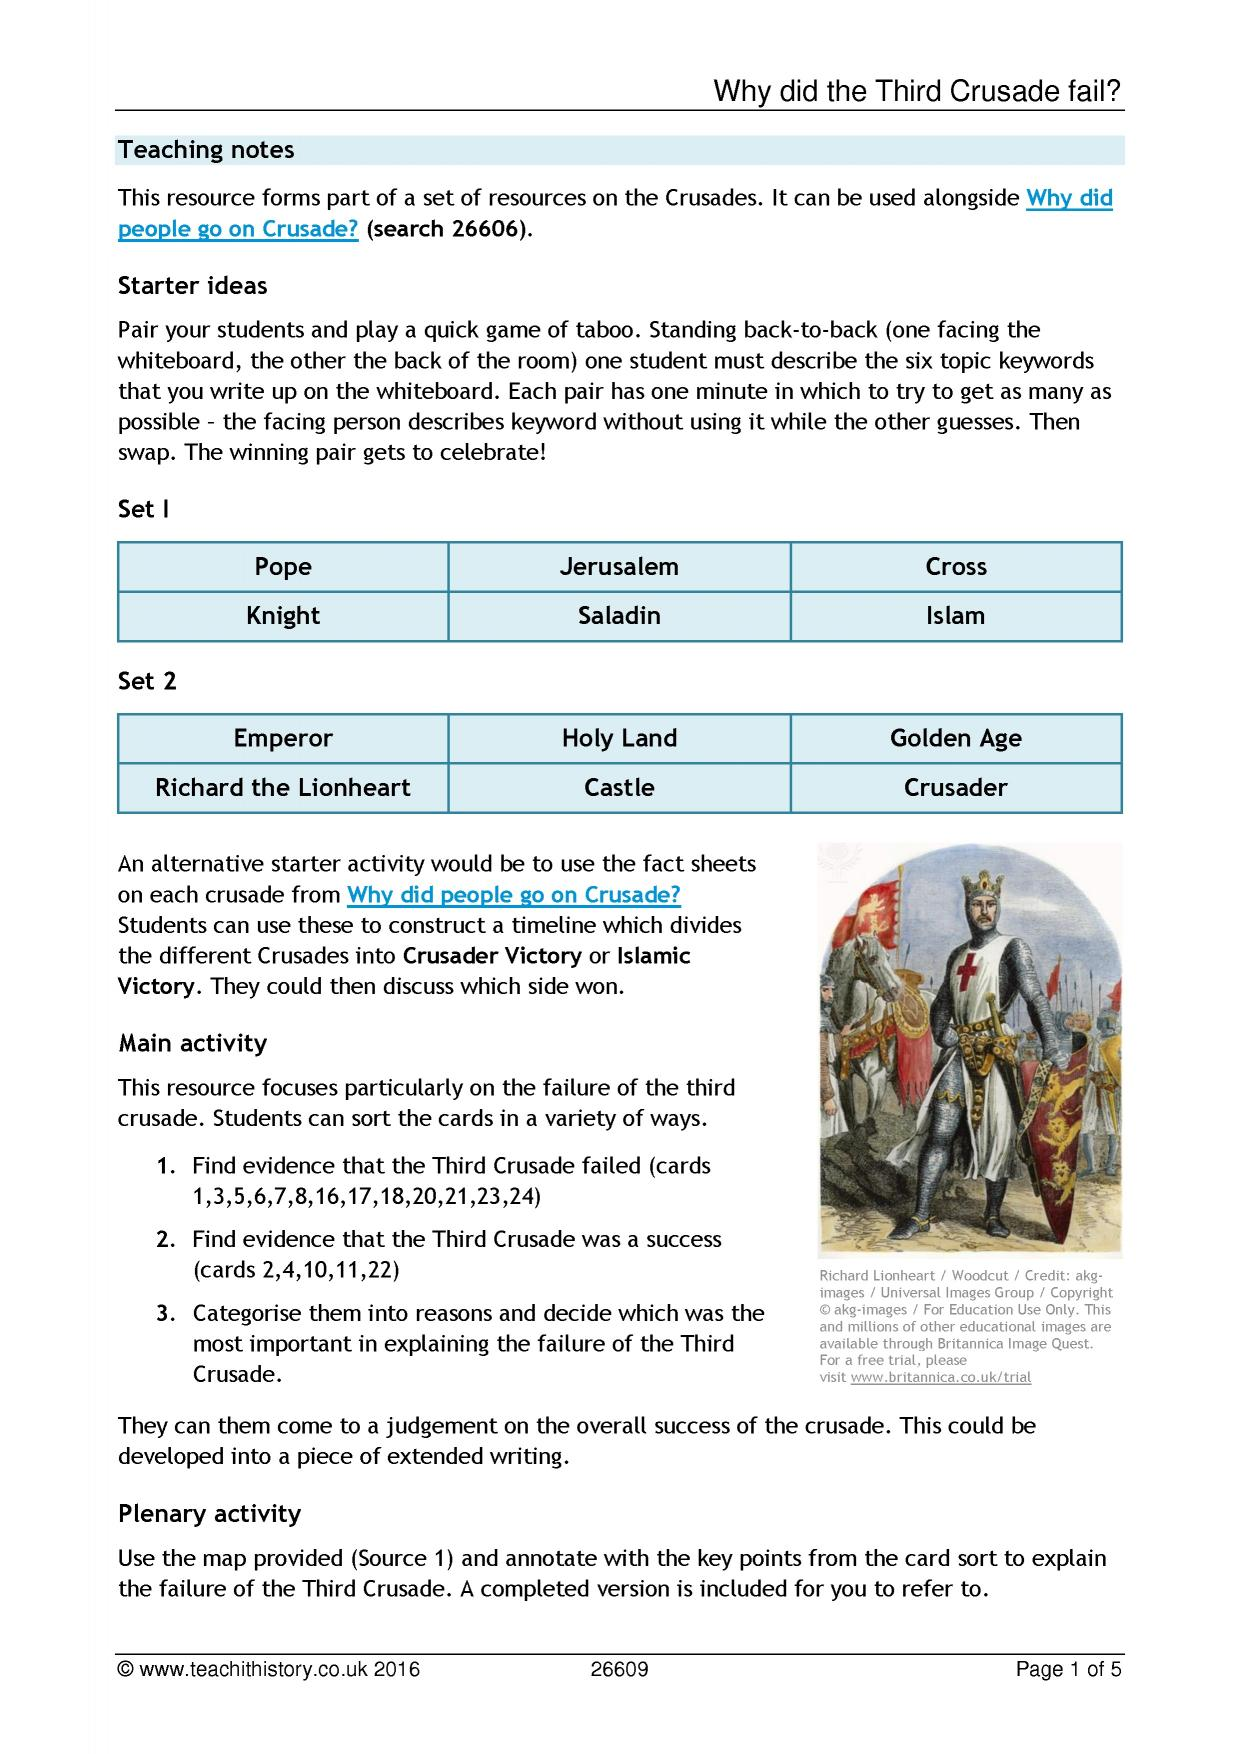 the first crusade essay example The first crusade essay sample literature on this subject abounds, some covering the whole crusade period and in other works specifically dealing with just the first crusade there is so much material that only a portion will be included here.